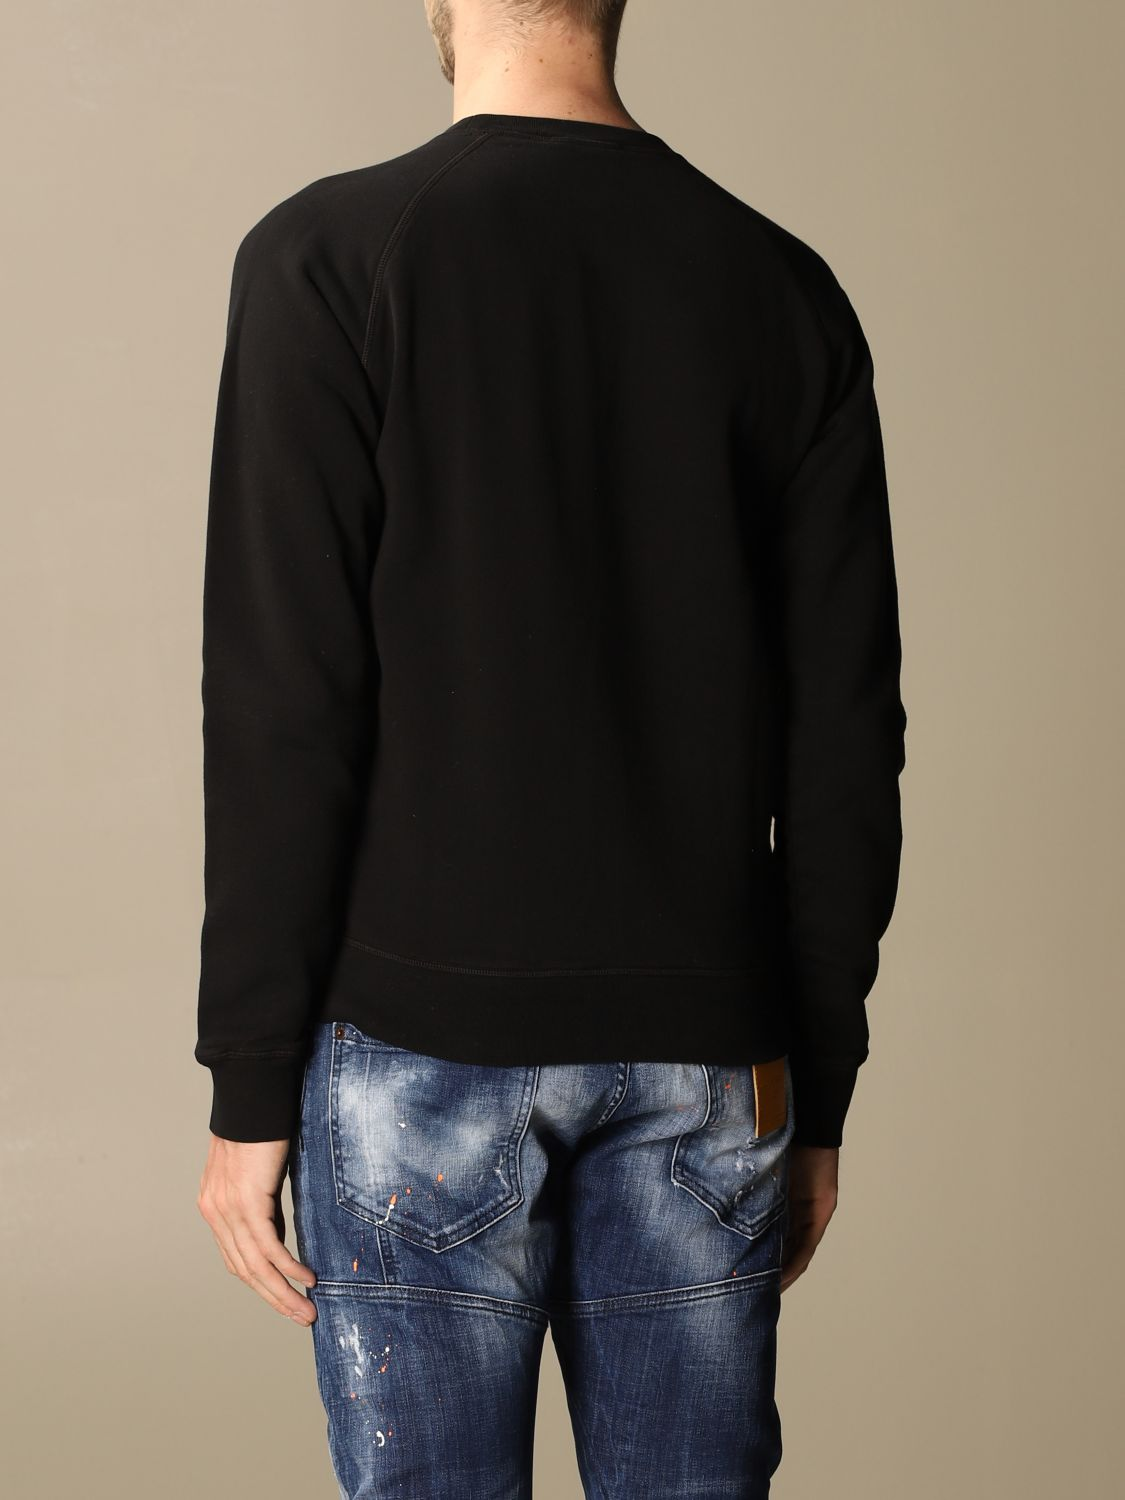 Sweatshirt Dsquared2: Dsquared2 men's sweatshirt black 2